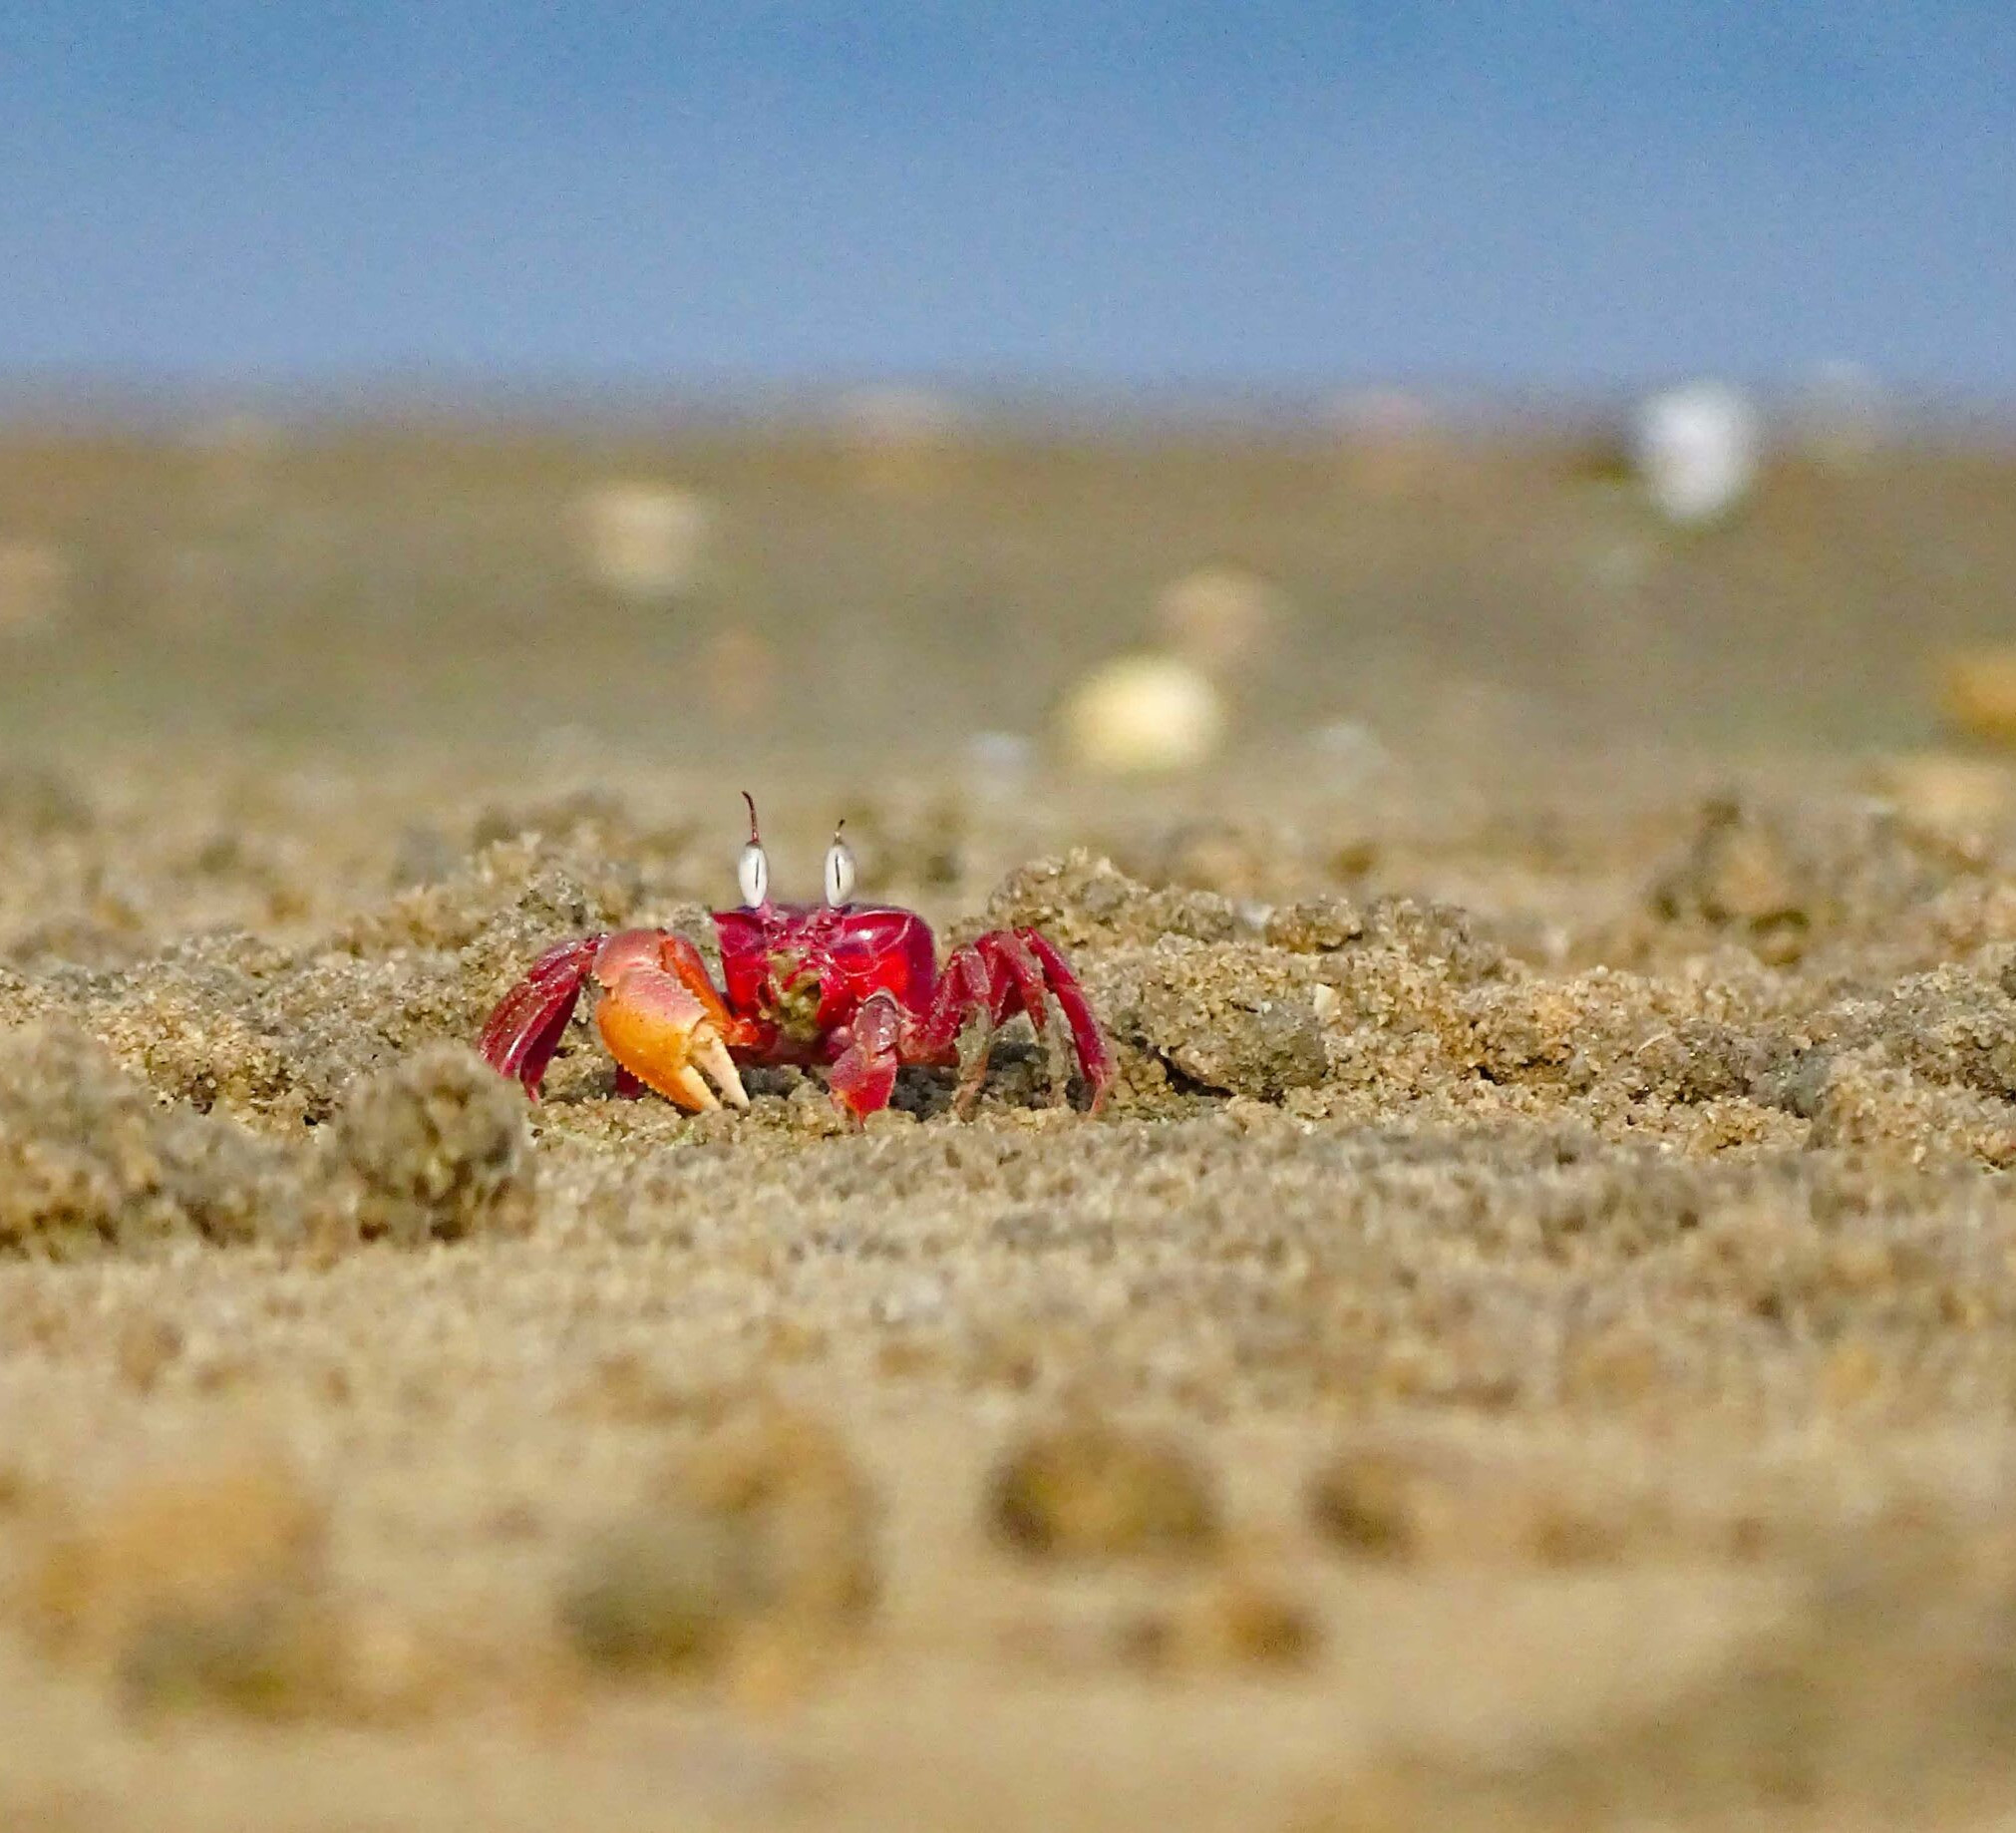 Sand Scavengers: Ghost Crabs in the Intertidal Zone of Chennai's Elliot's Beach